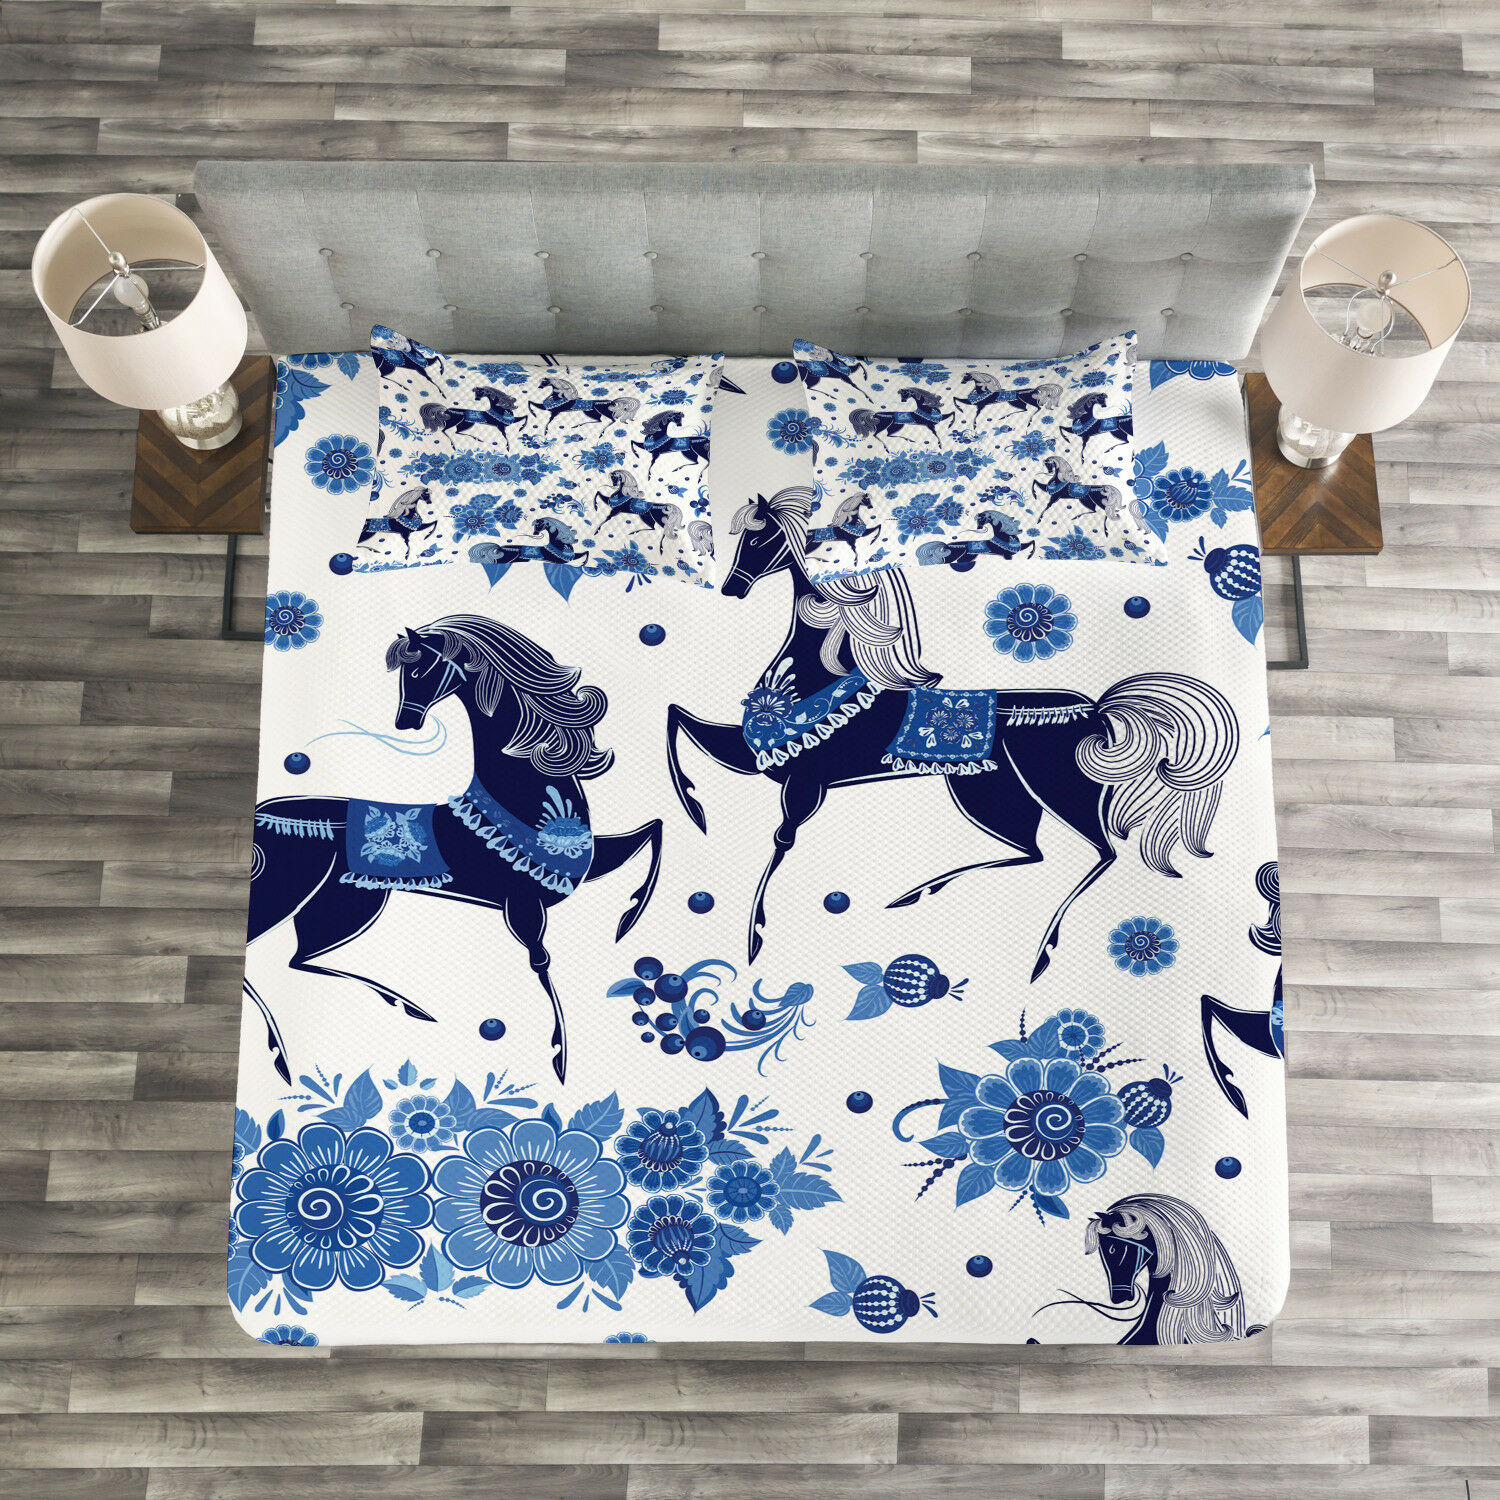 Horse Quilted Bedspread & Pillow Shams Set, Middle Ages Drawings Print